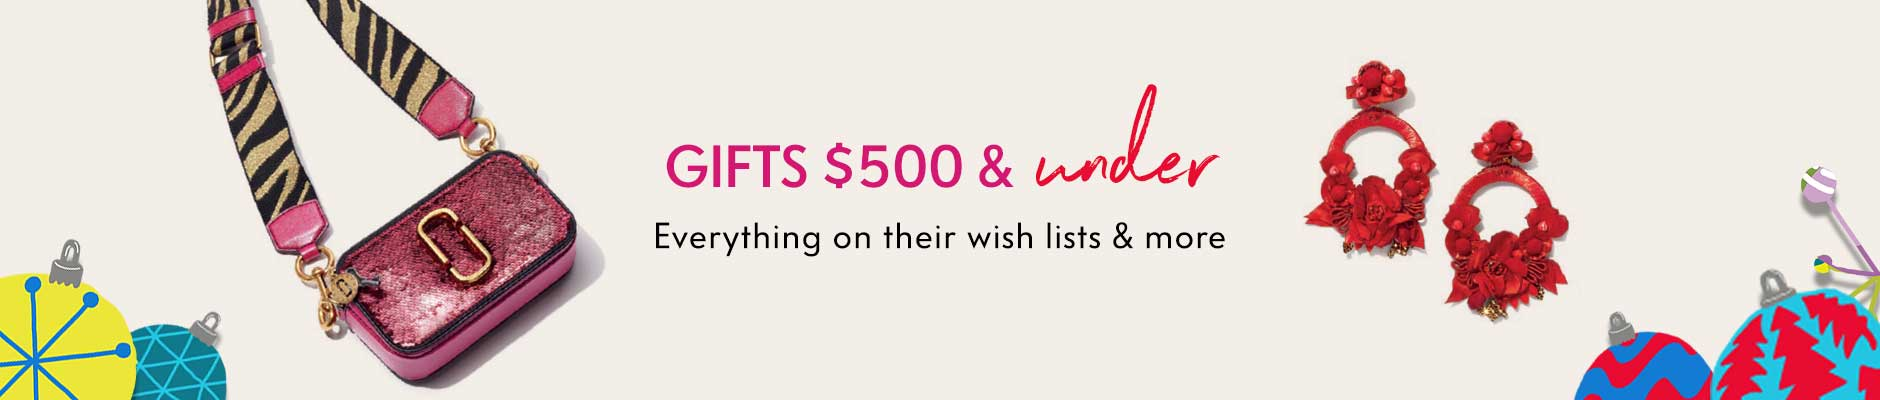 Gifts $500 & under - Everything on their wish lists & more